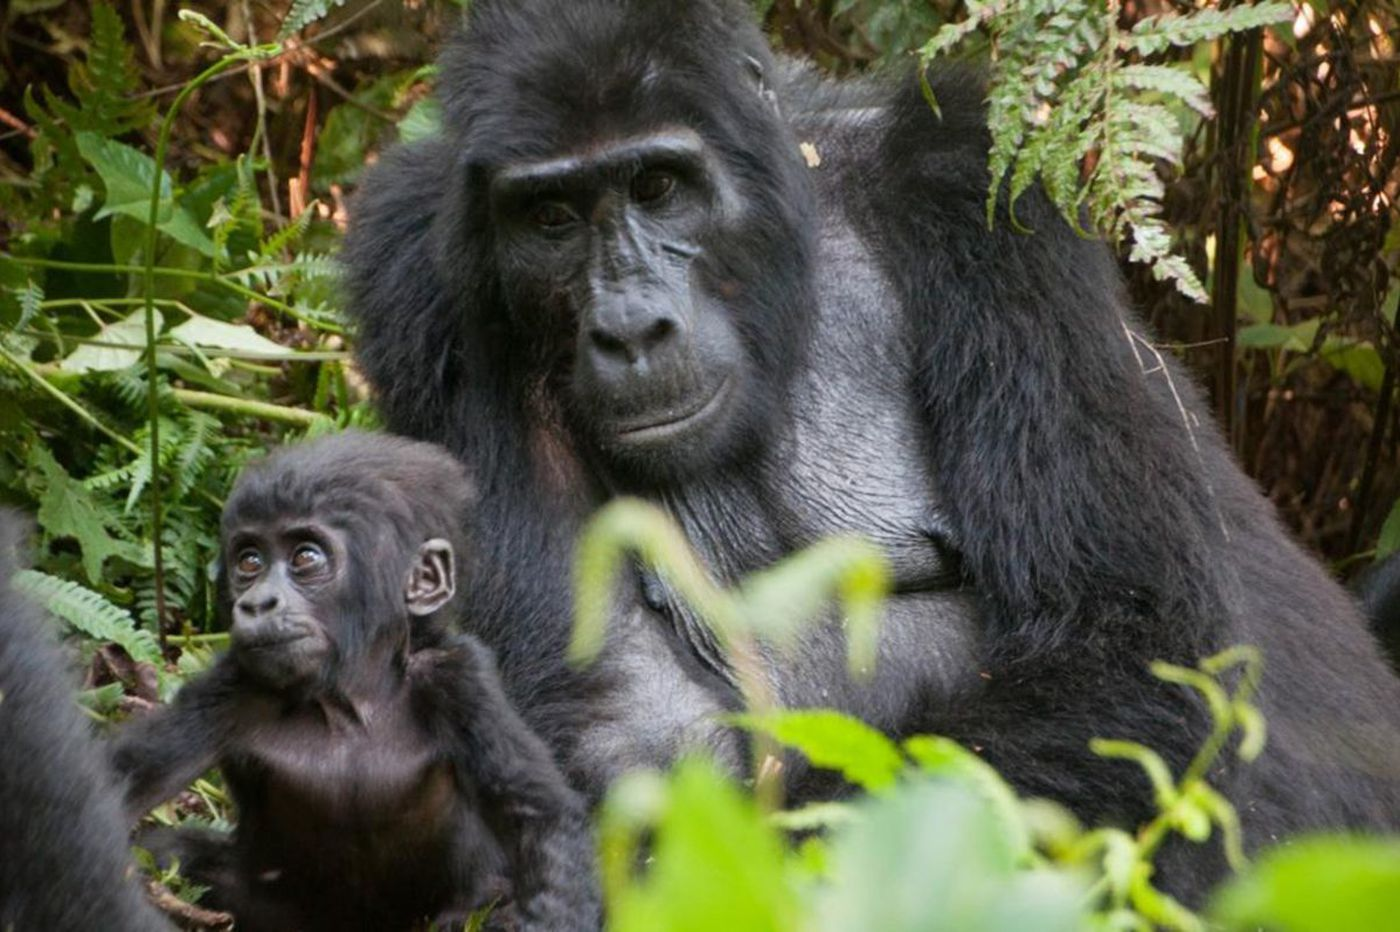 Uganda's mountain gorillas approach far closer than we expect. And that's a good thing